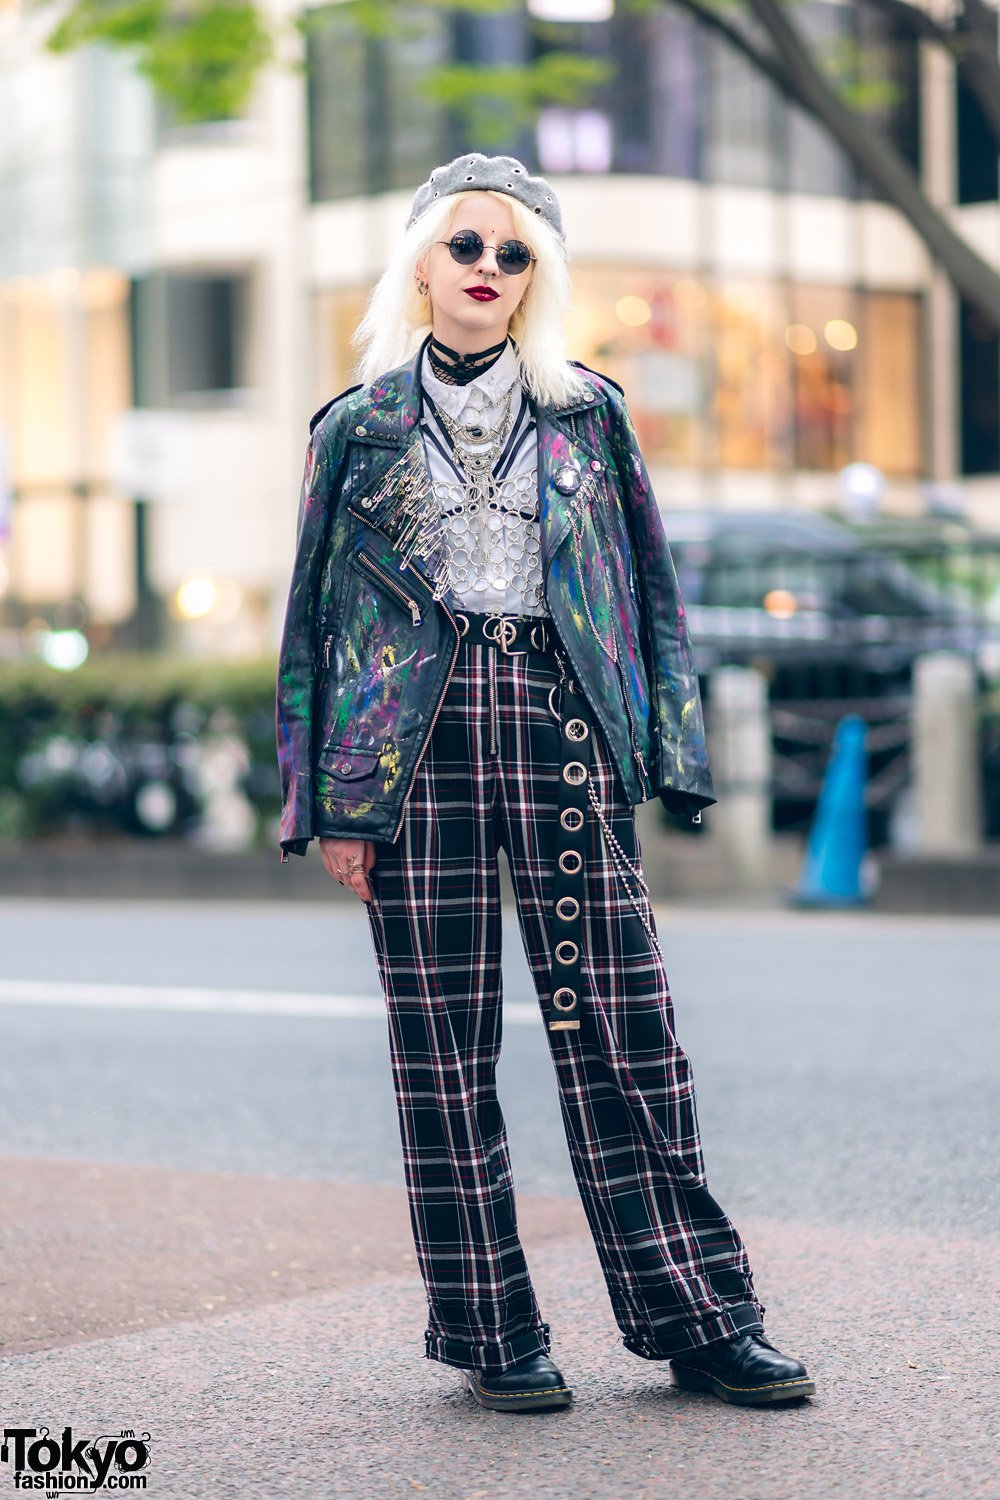 Tokyo Streetwear w/ Platinum Blonde Hair, Paint Splatter Jacket, Plaid Pants, Chain Top, Harness, Leather Boots & Silver Accessories